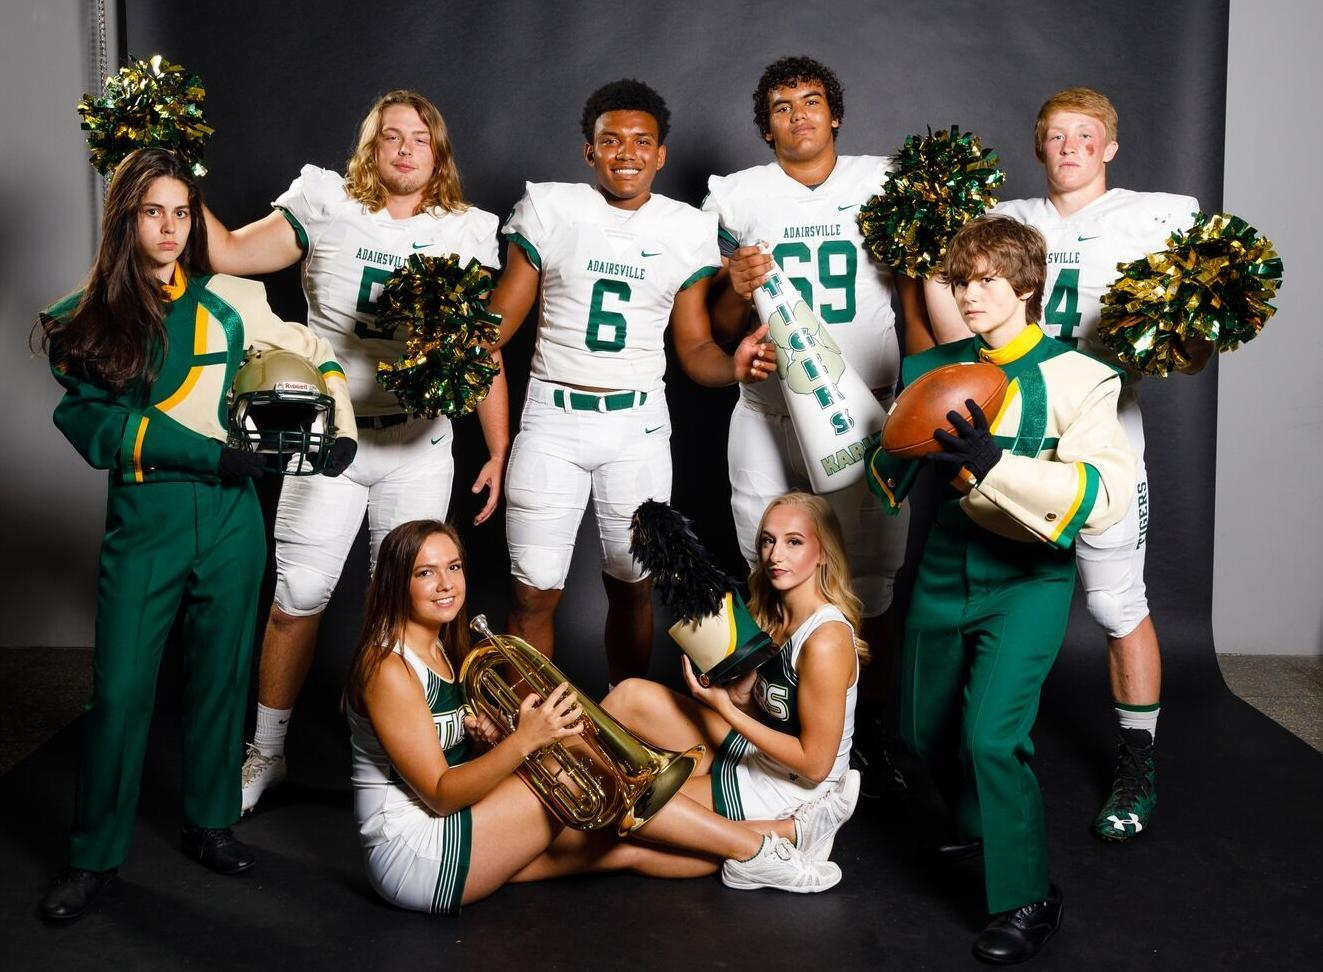 Sports and Band picture